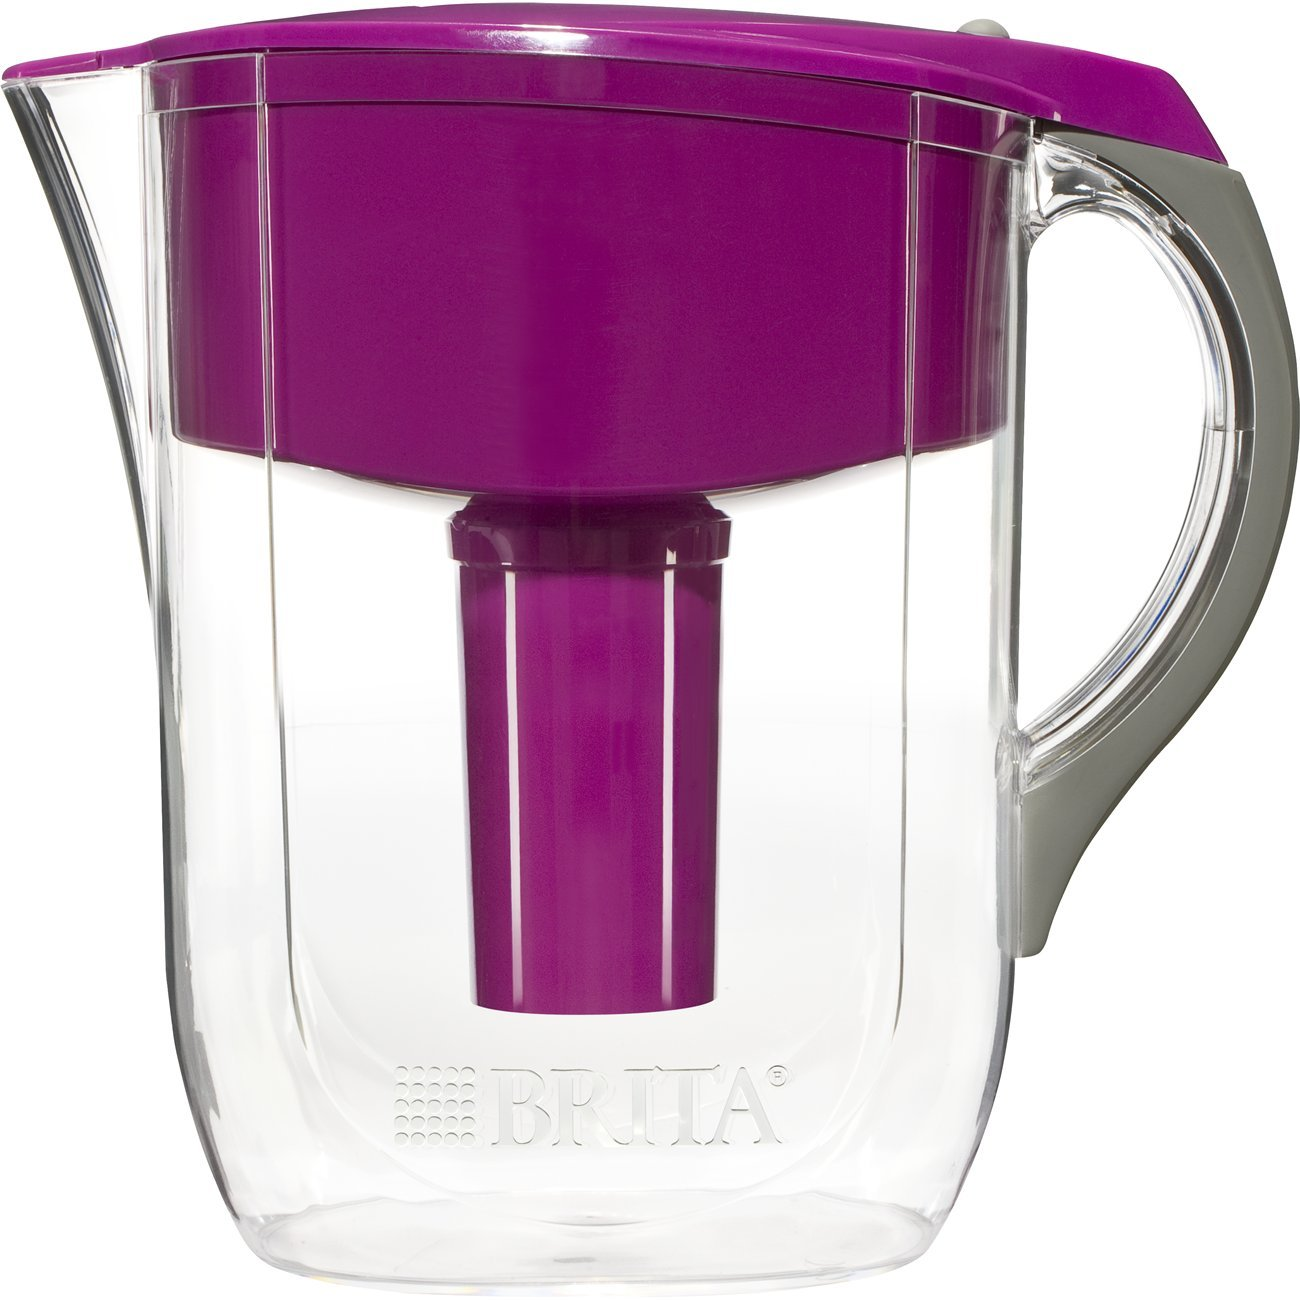 Brita Large 10 Cup Water Filter Pitcher with 1 Standard Filter, BPA Free - Grand, Violet by Brita